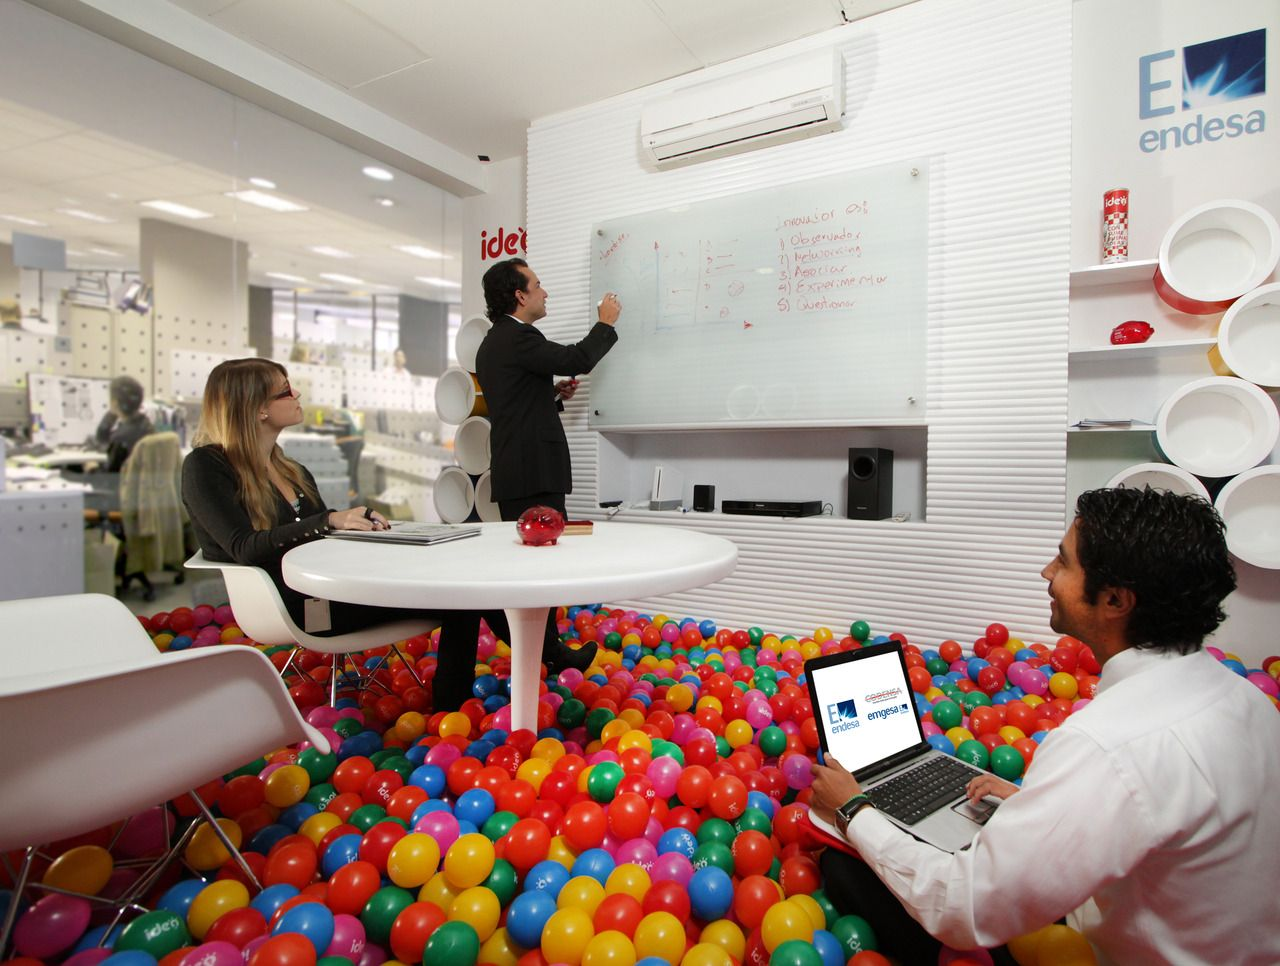 httpswwwgooglechsearchqcoolest office ever Have Fun